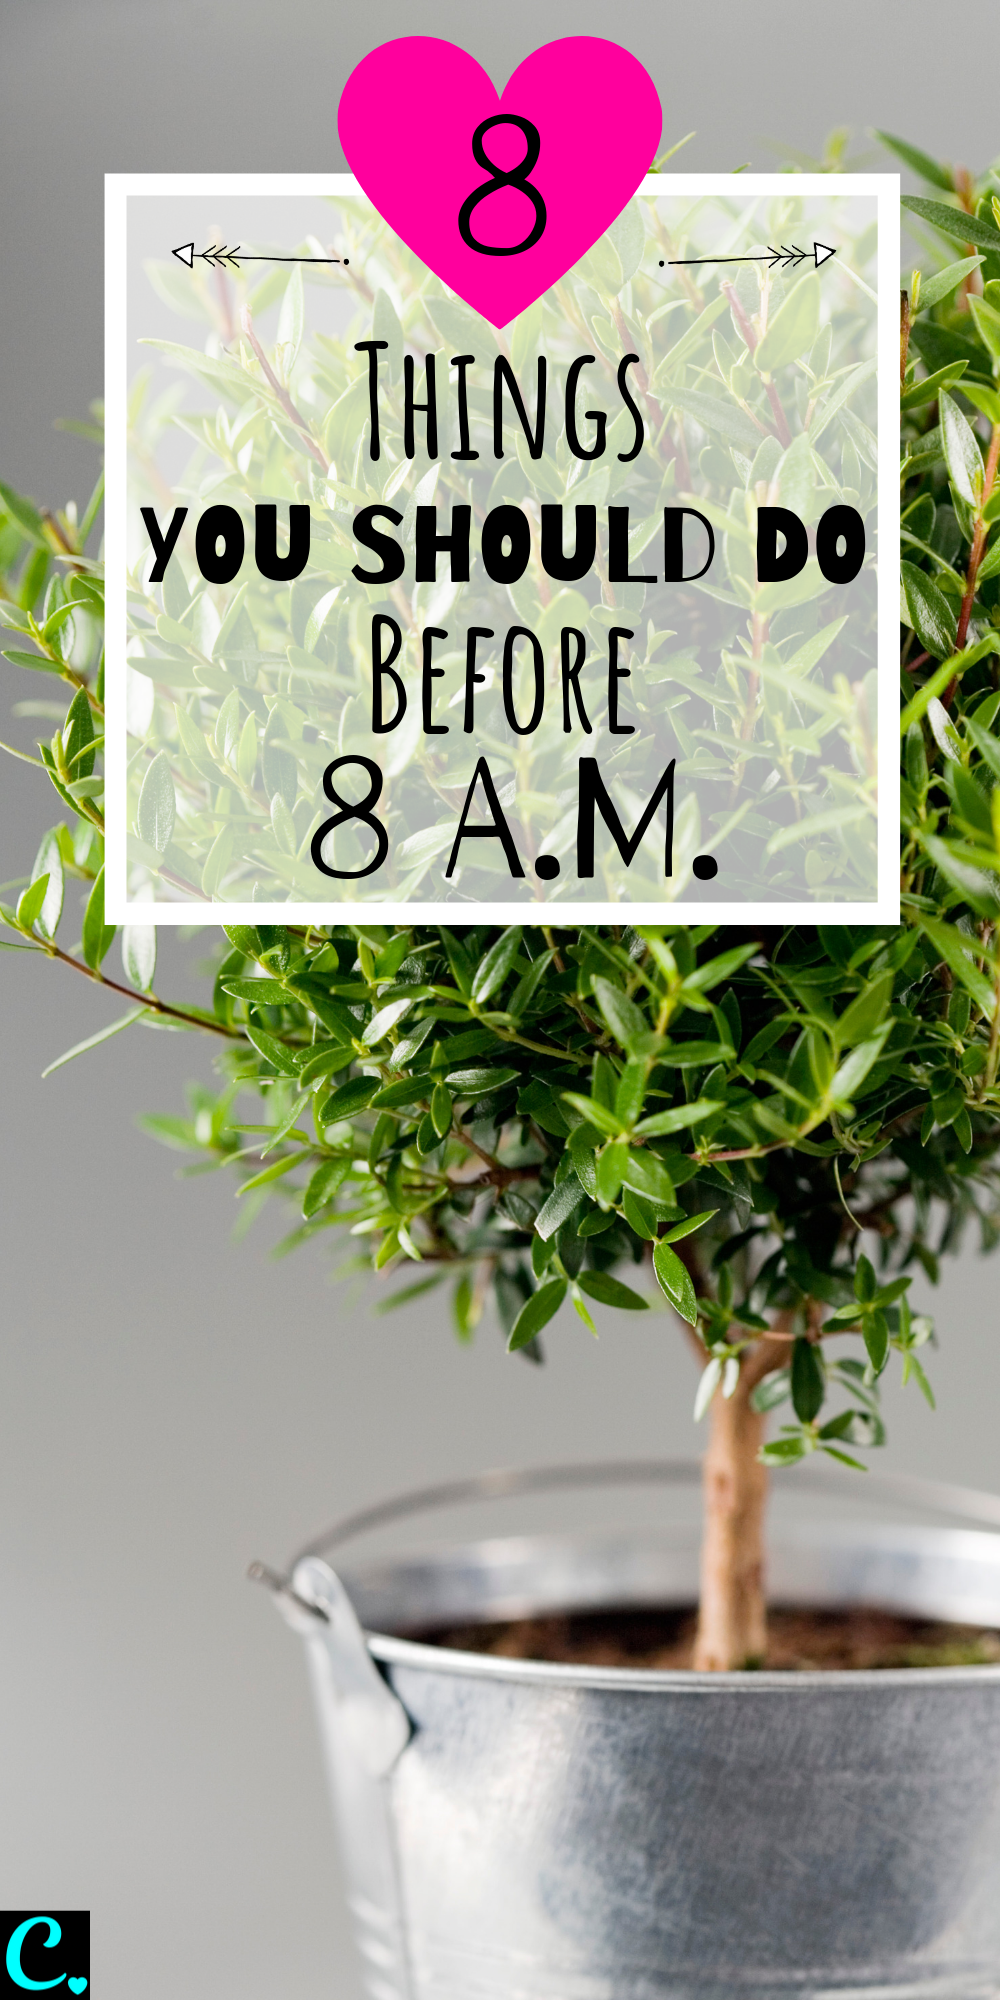 The Best Morning Routine: 8 Things To Do Before 8 A.M.   How to be productive   Personal development   Productivity tips   Habits for success   Via: https://captivatingcrazy.com #captivatingcrazy #bestmorningroutine #productivitytips #howtoachievegoals #successhabits #healthylifestyle #liveyourbestlife